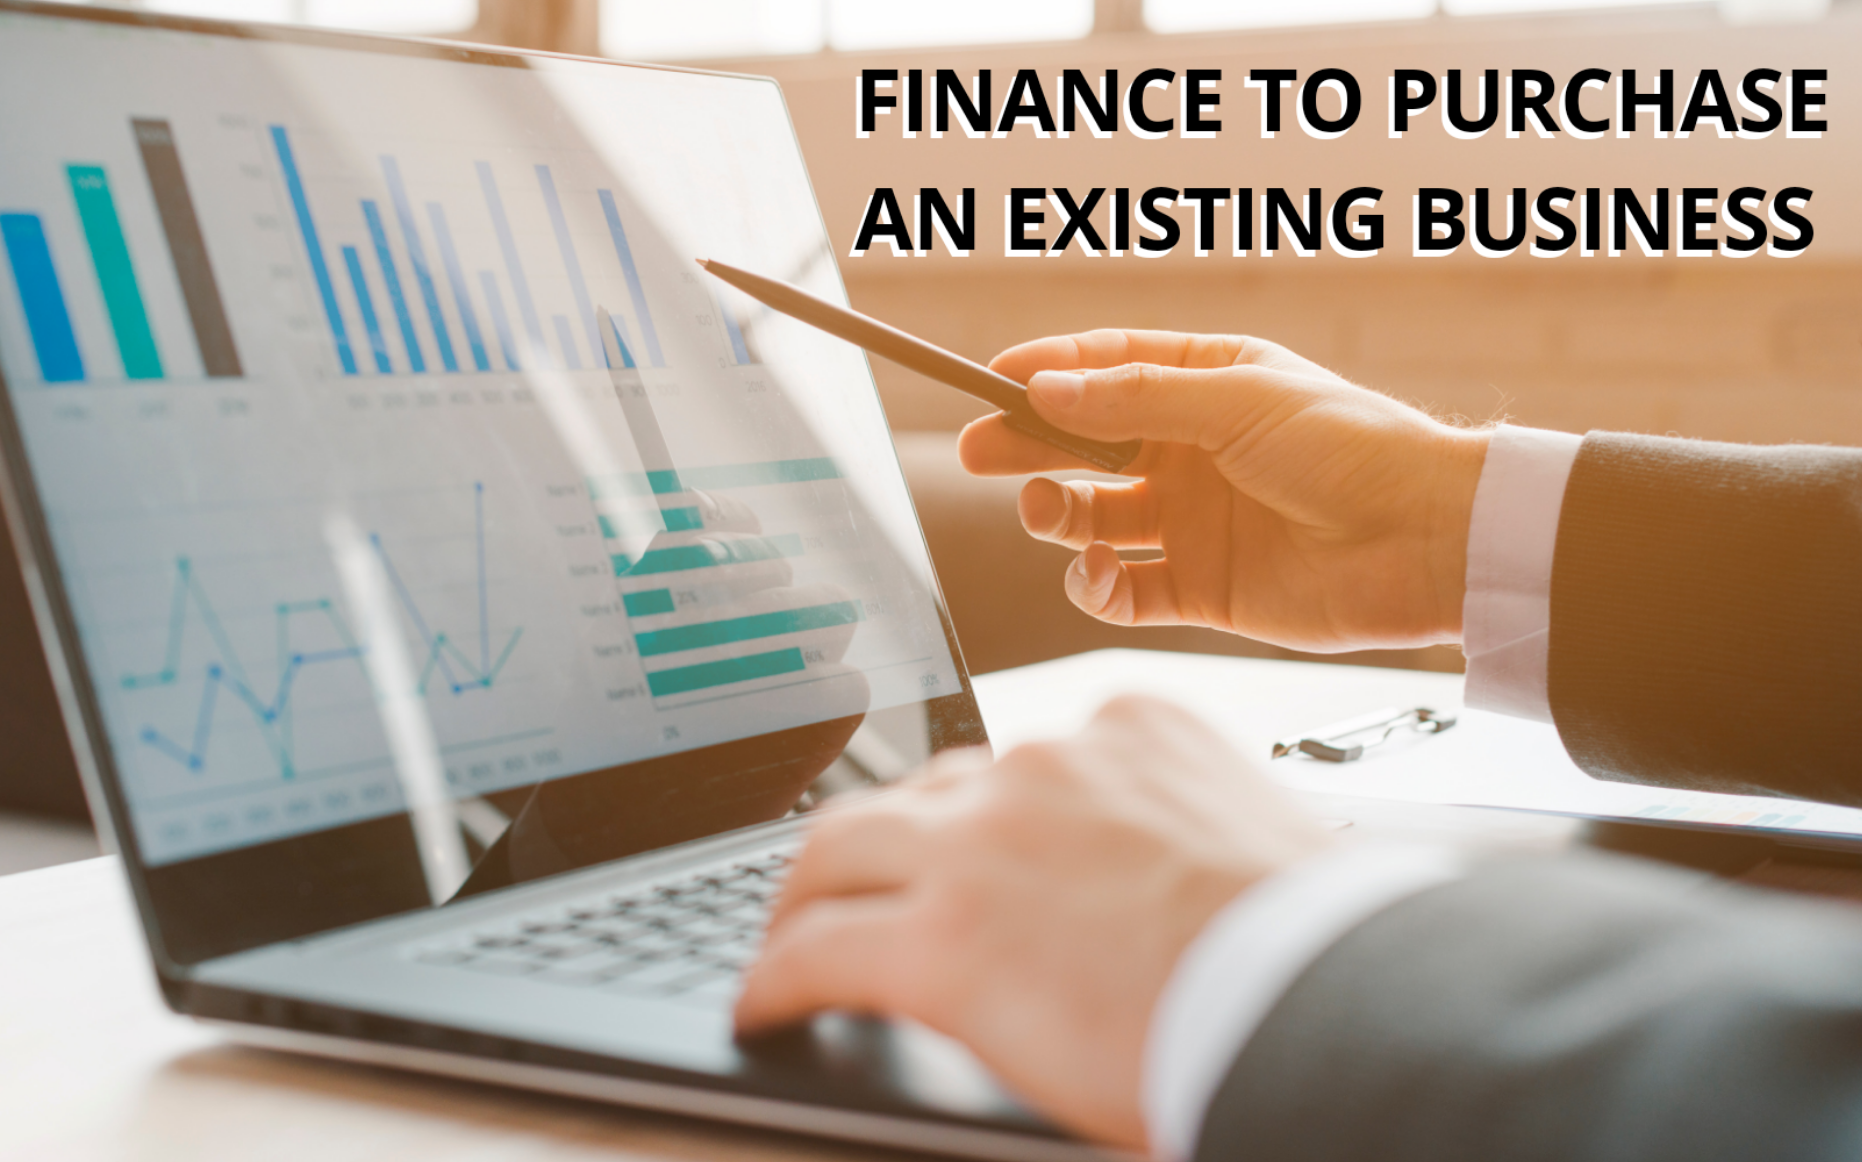 A Complete Guide on How to Get Finance to Purchase an Existing Business